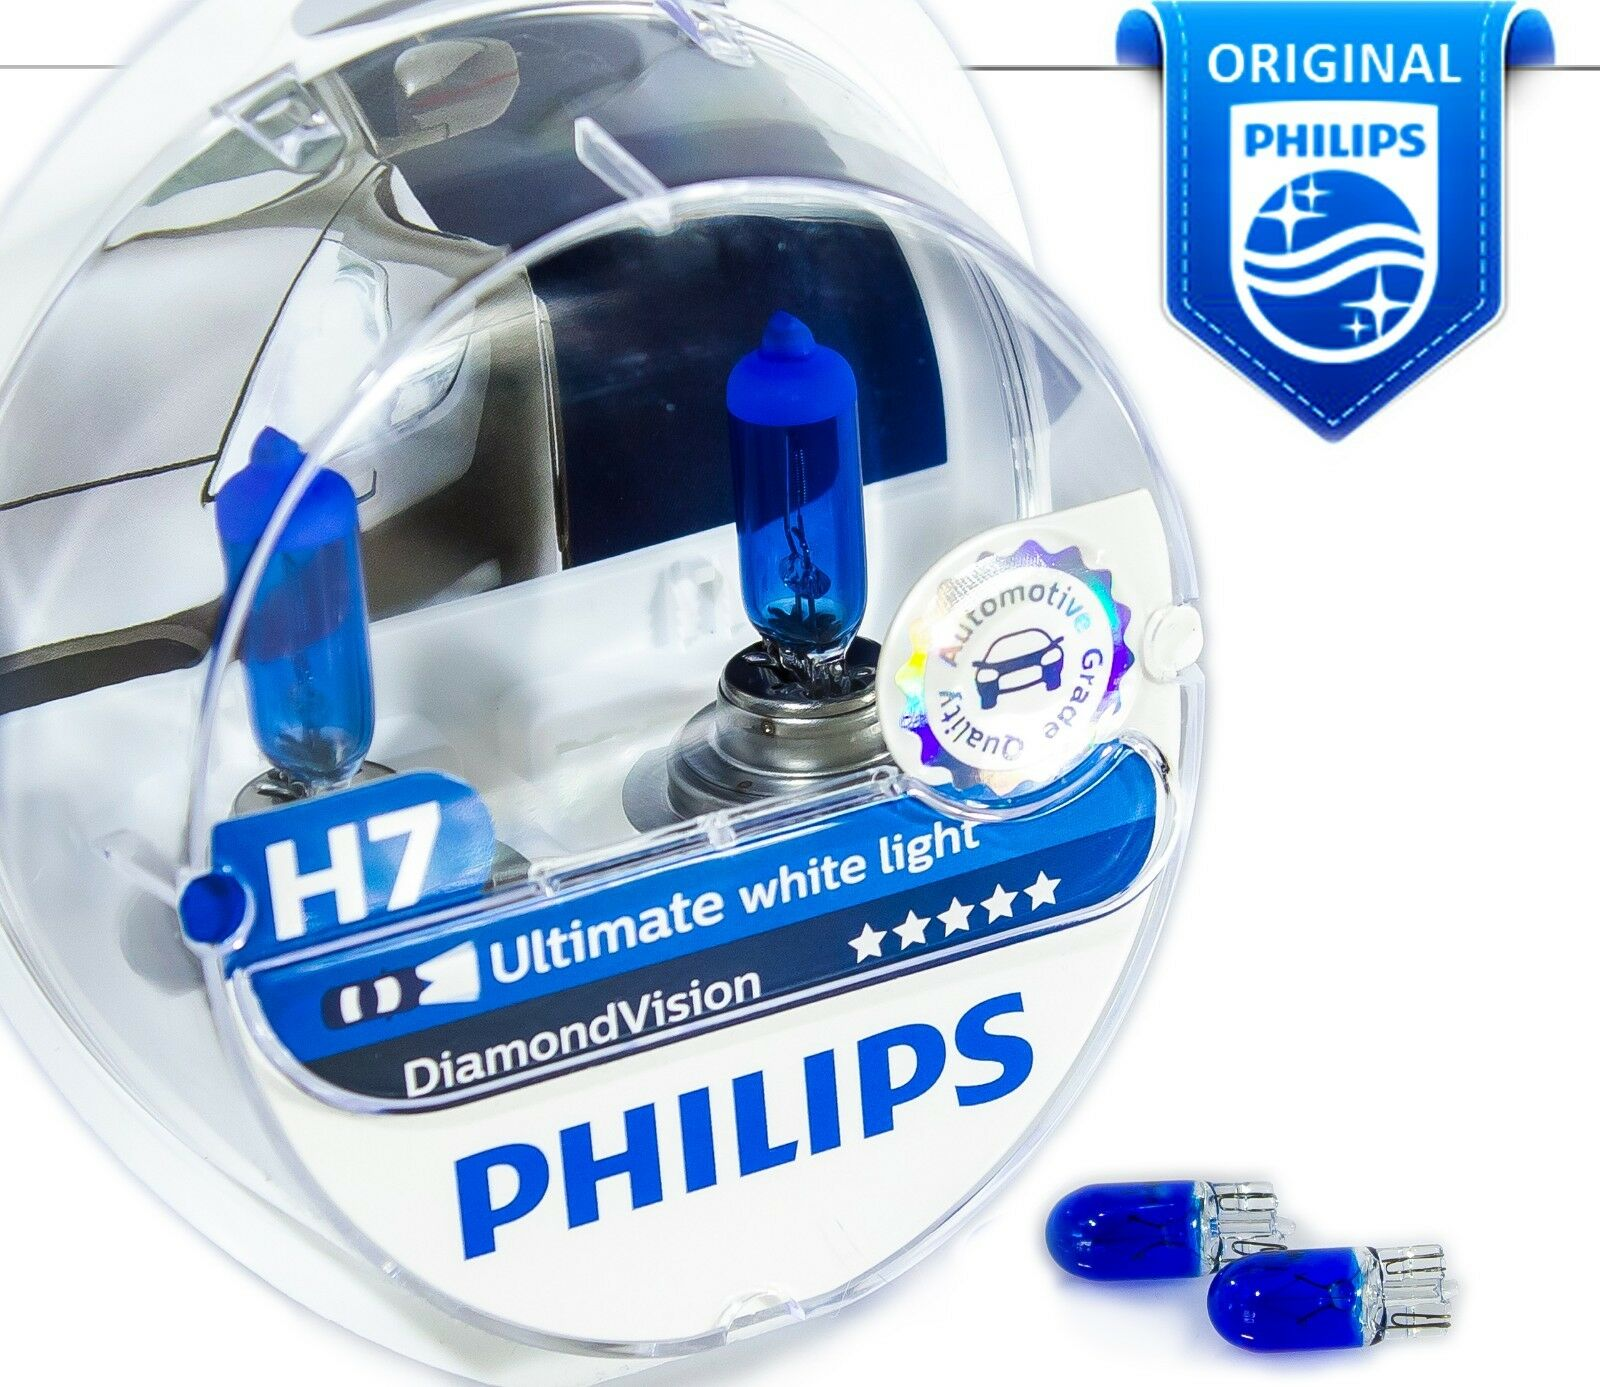 new h7 philips diamond vision 5000k car headlight bulbs 12v 55w px26d blue w5w eur 26 89. Black Bedroom Furniture Sets. Home Design Ideas